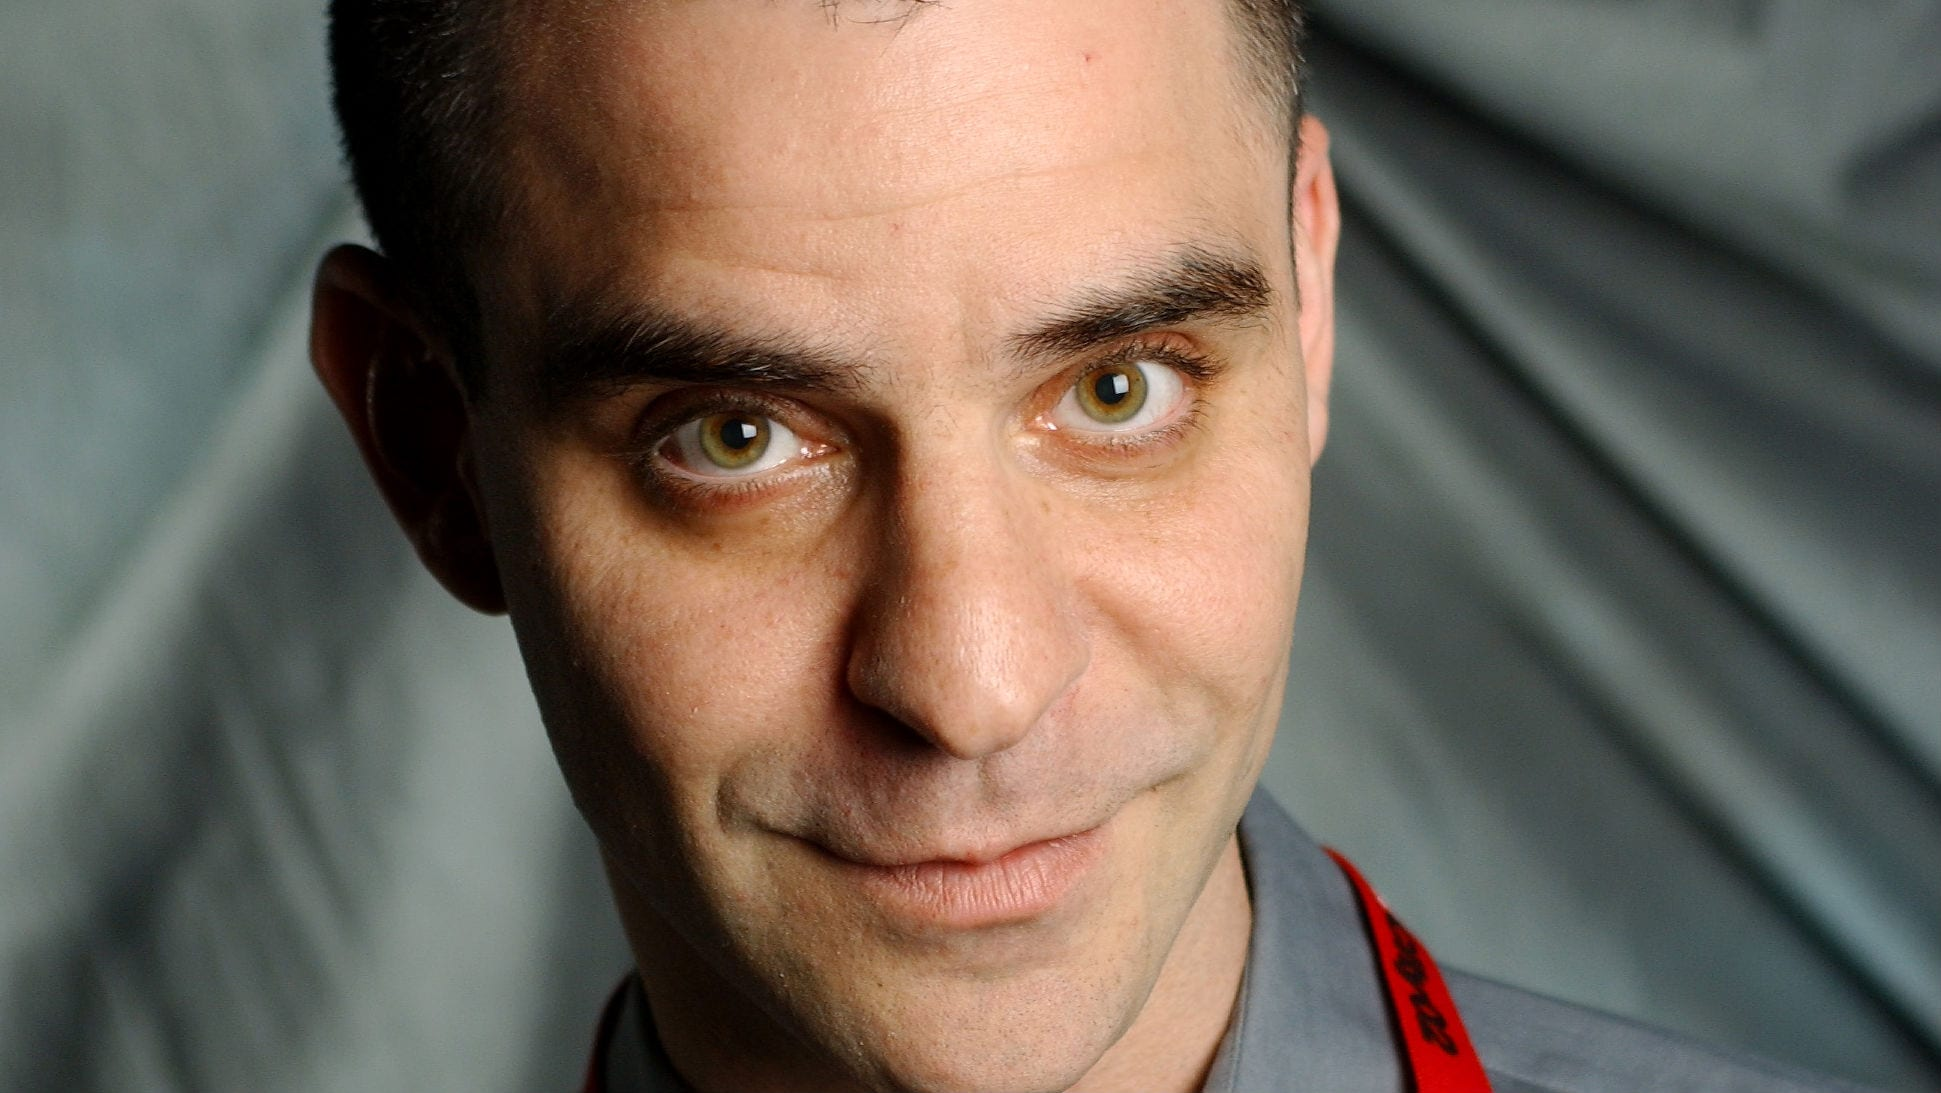 David Rakoff, Essayist and 'This American Life' Contributor Has Died